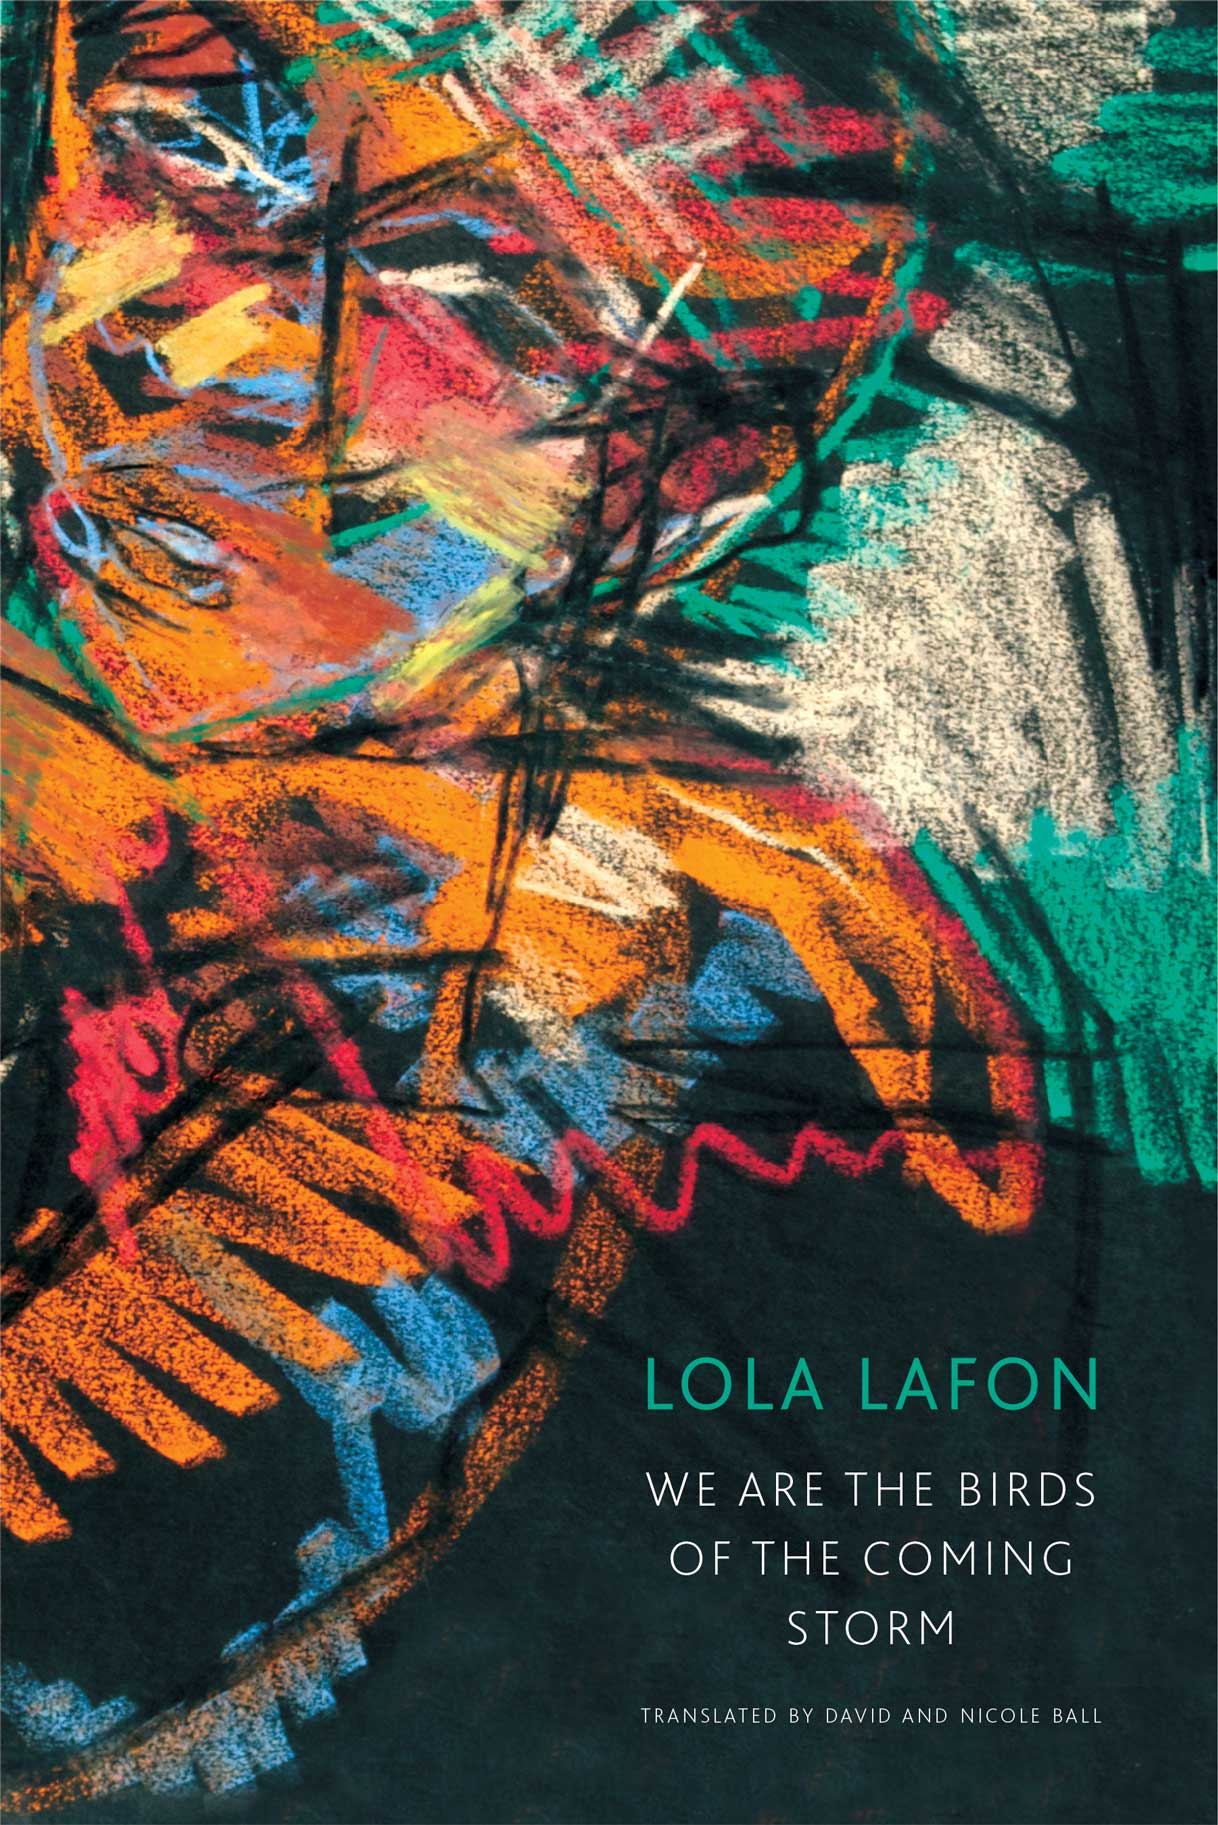 We Are the Birds of the Coming Storm by Lola Lafon |  Seagull Books